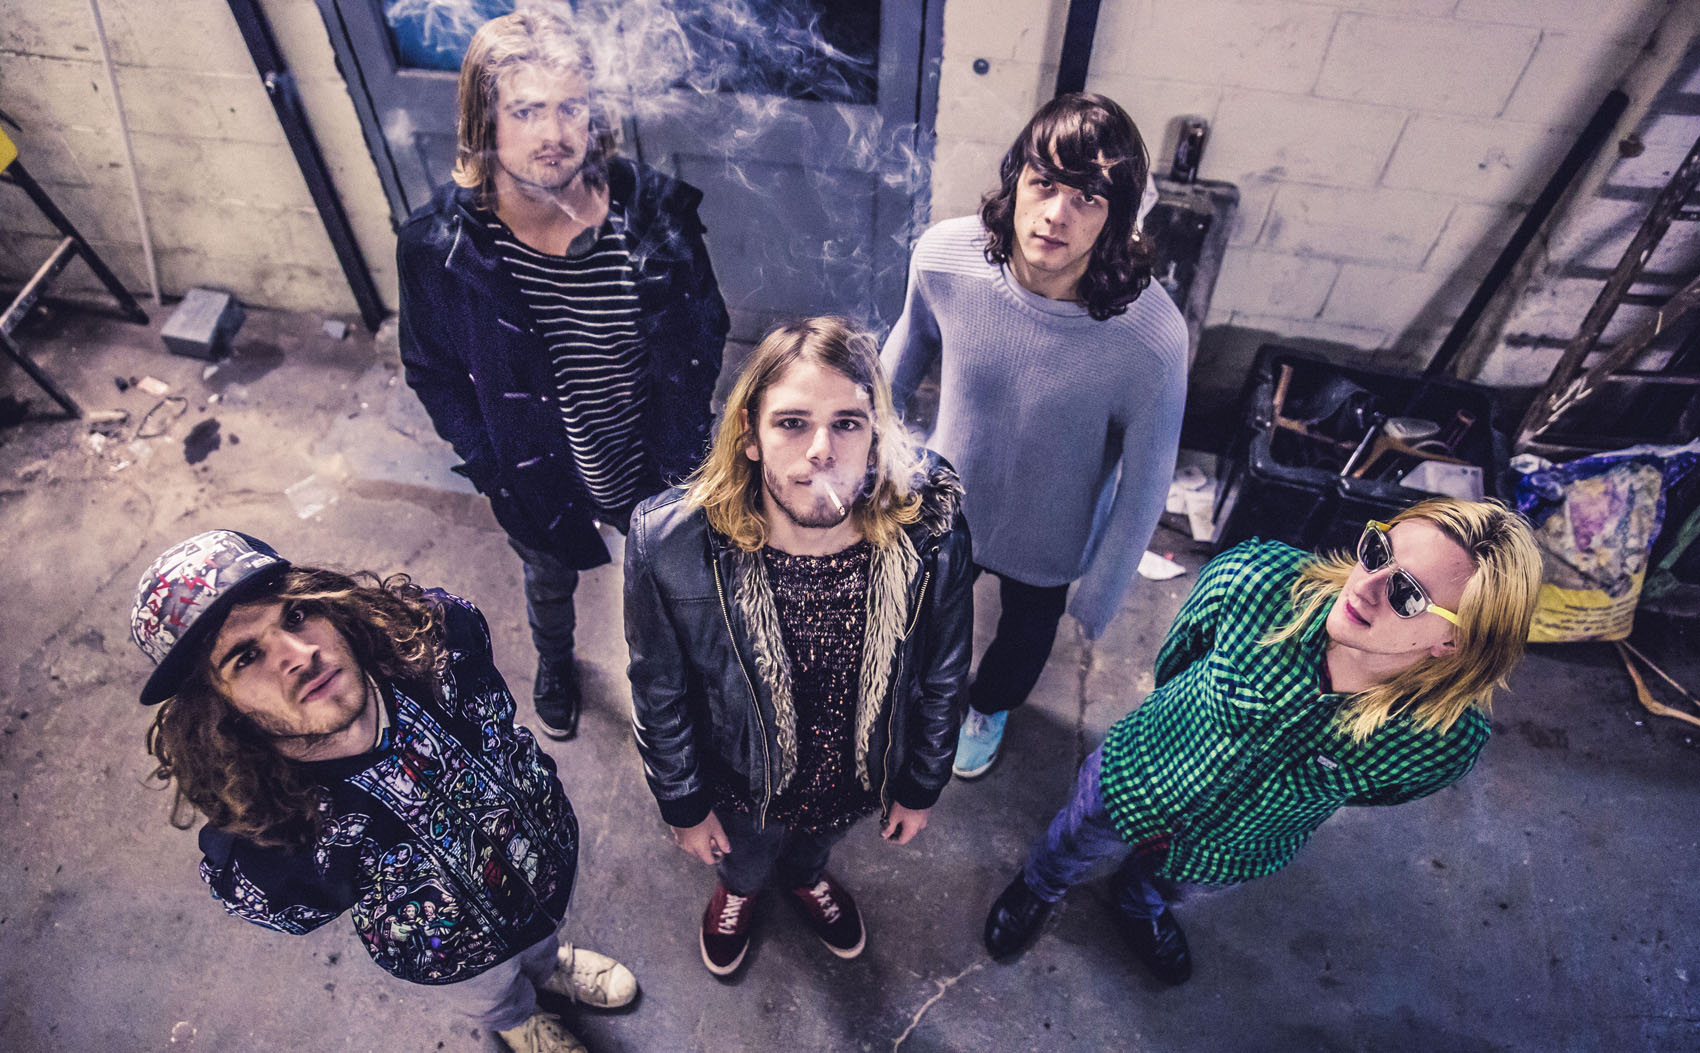 """Allusondrugs  ALLUSONDRUGS will be returning to The Horn on Wednesday 2nd November 2016! Their last visit was a SOLD OUT shows as part of Independent Venue Week 2016, so don't delay booking tickets for this show!  """"A trippy injection of bulldozing riffs, hypnotic vocals and mosh pit igniting fury... Grunge revivalism is in rude health, thanks to riff-hungry bands such as Allusondrugs and Dinosaur Pile Up"""" *Q MAGAZINE*  """"So these are a pretty fun band. Yorkshire based Allusondrugs have a distinctly grunge sound but there's something a bit more delicate to the vocals and guitar playing. There's grunge, heavy rock, psych and emo all thrown in for what is a very solid single."""" *ARTROCKER*  """"These West Yorkshire newcomers create a mesmerising concoction of psychedelia set to blissed-out vocals that sound like they've arrived via some metal influences. New single """"Nervous"""" features spaced-out guitar work set to a sultry bass line that quickly expands into a chorus of full-frontal grunge fuckery"""" *NME*   Calling of the Fly    Diamond In The Dirt"""